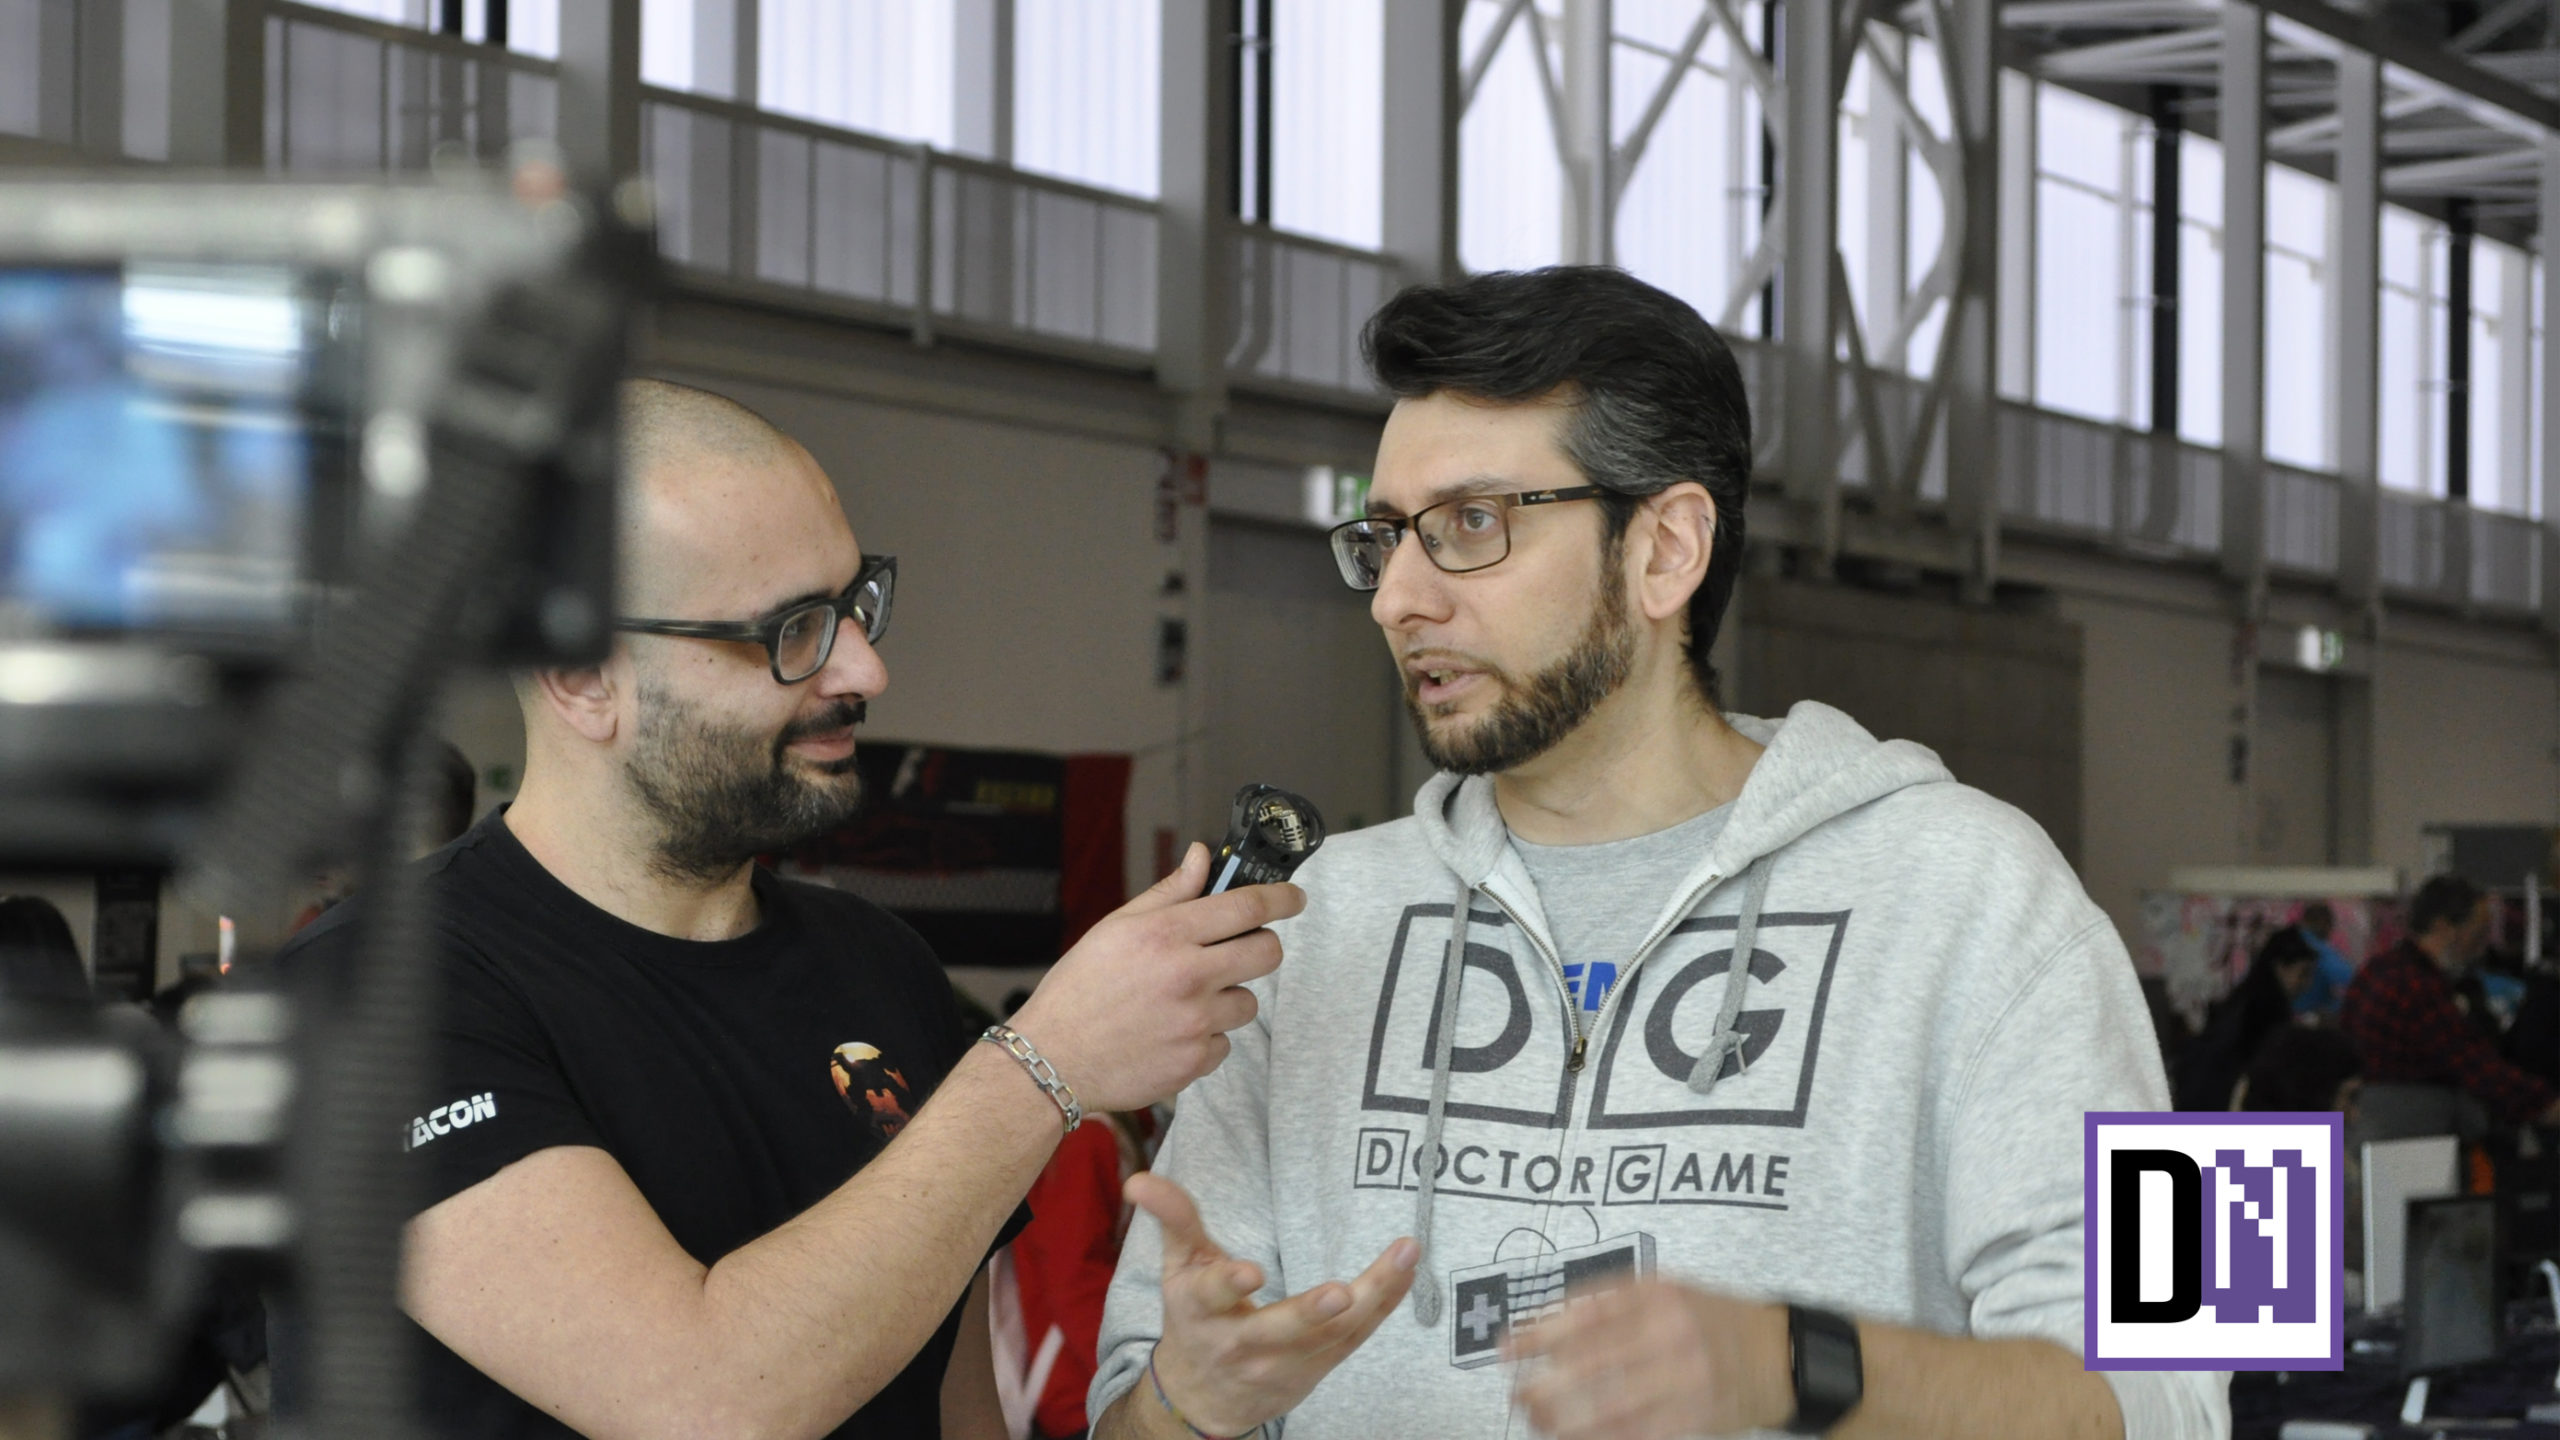 doctor-game-intervista-nerd-show-bologna